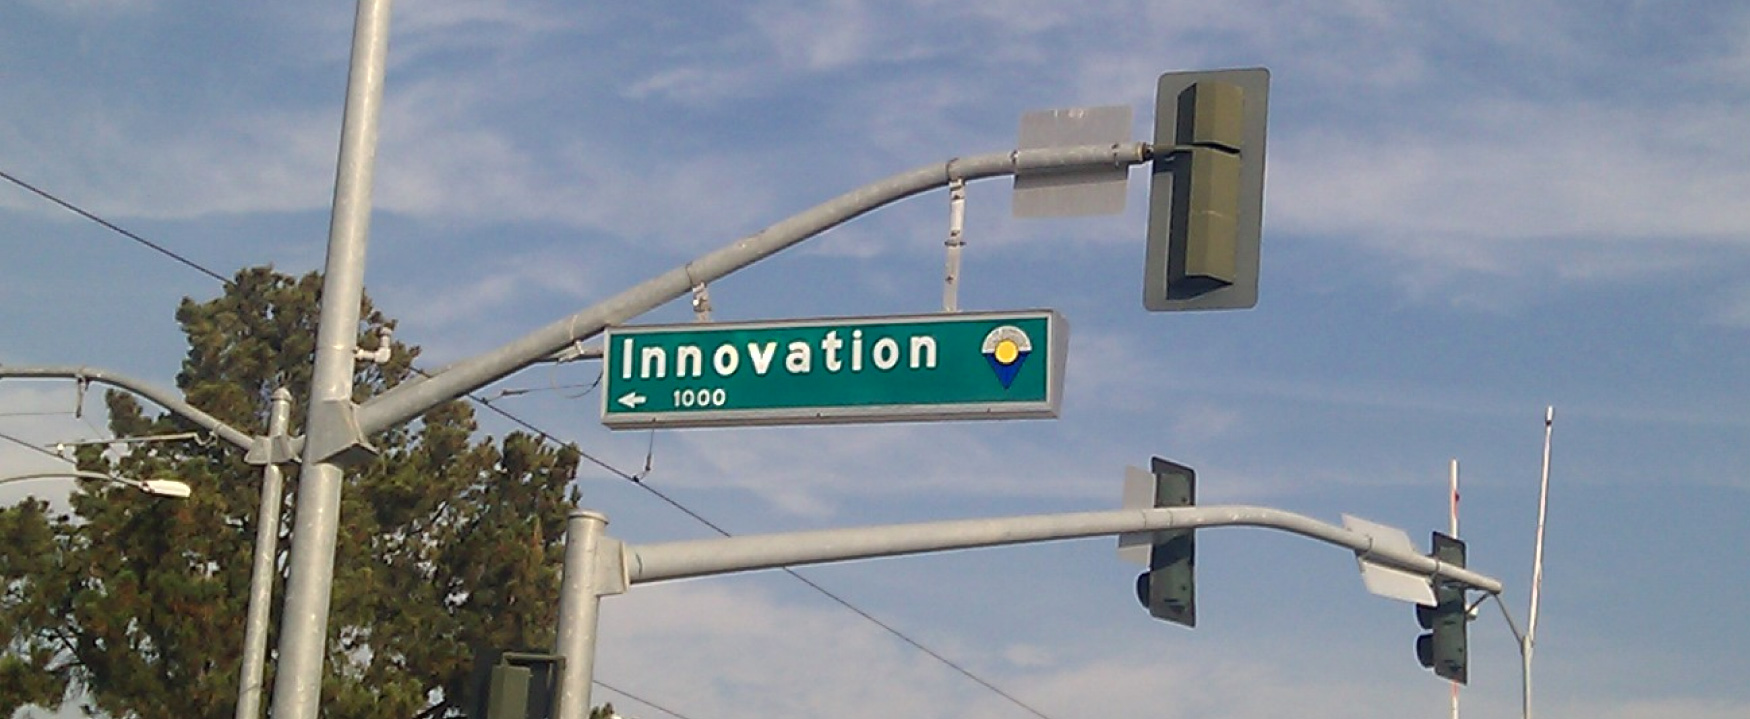 A photograph shows a street sign, and the street is named Innovation